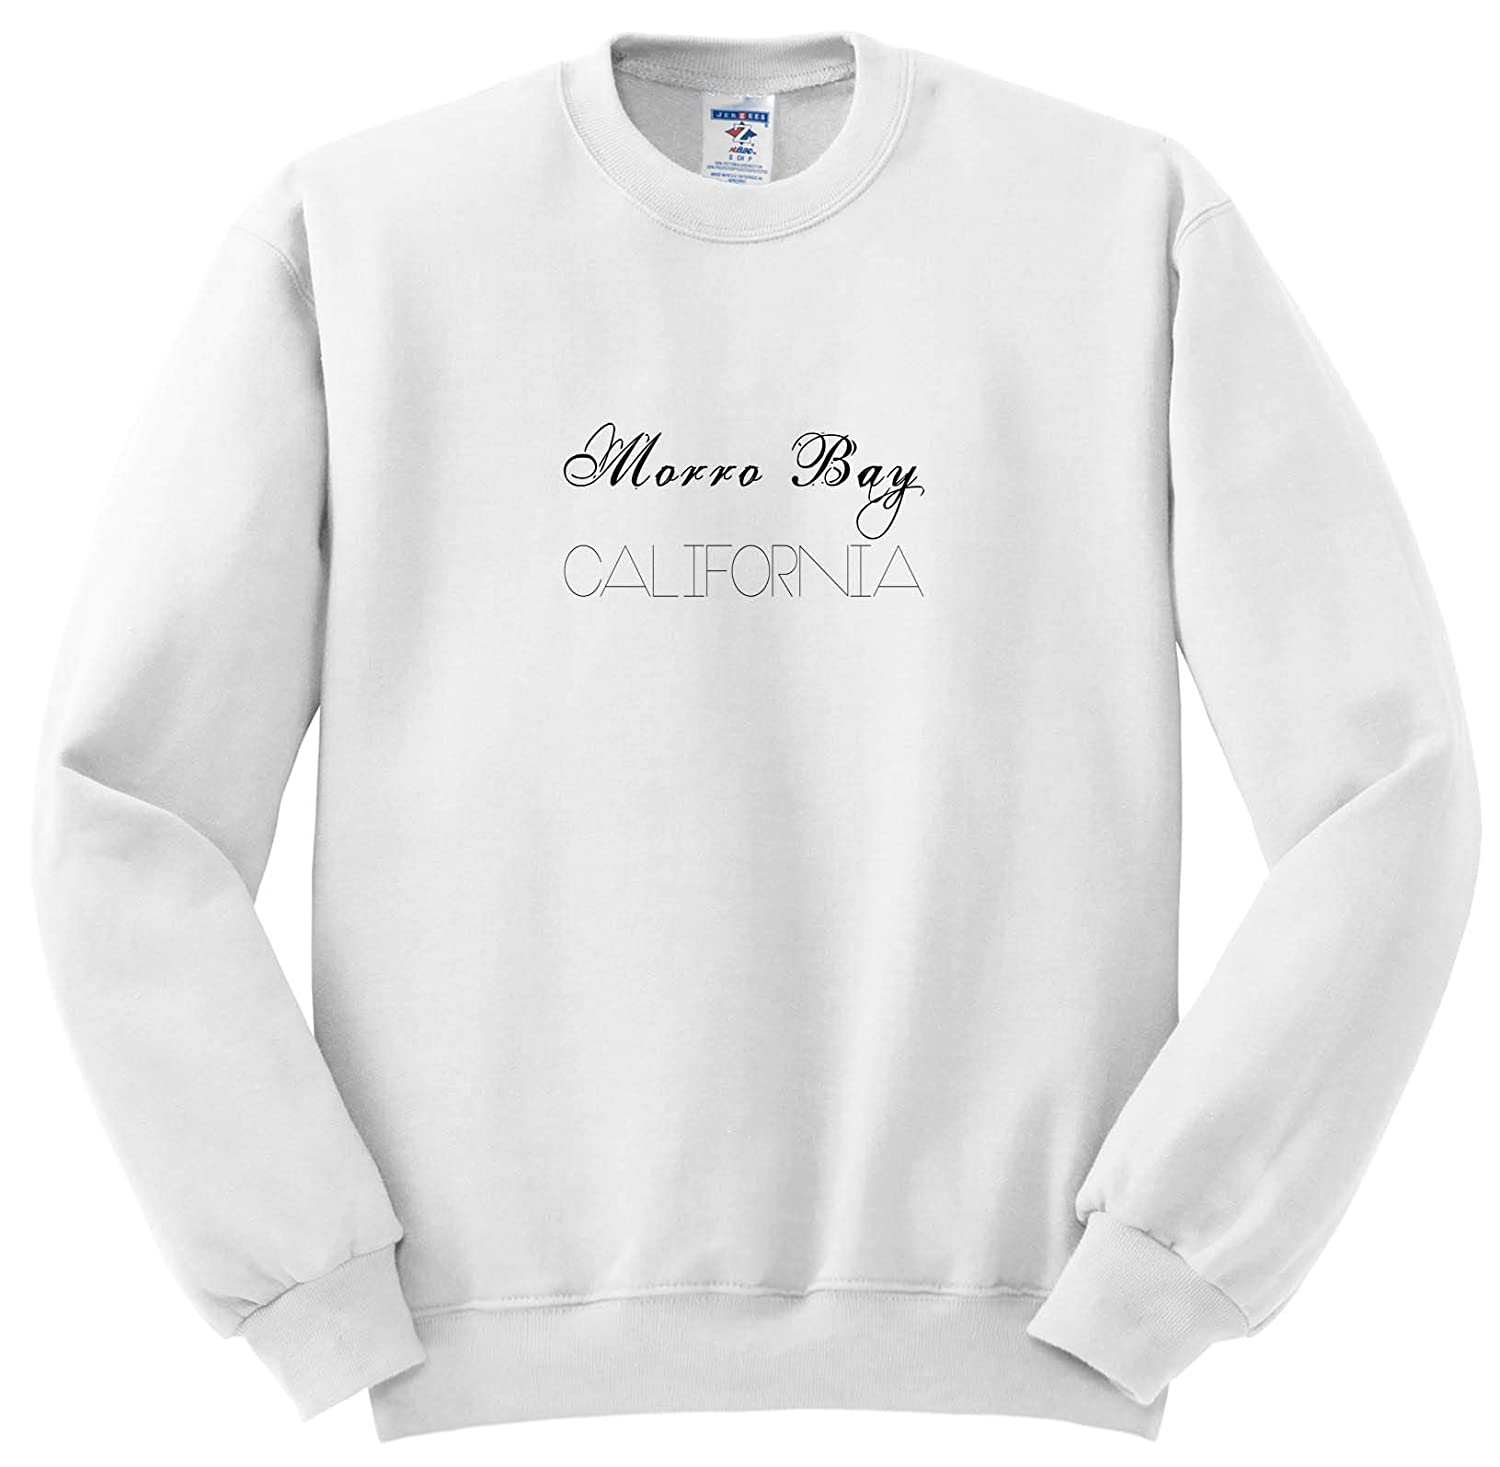 3dRose Alexis Design - American Beaches Typography - American Beaches. Decorative Text Morro Bay, California - Sweatshirts ss_290870